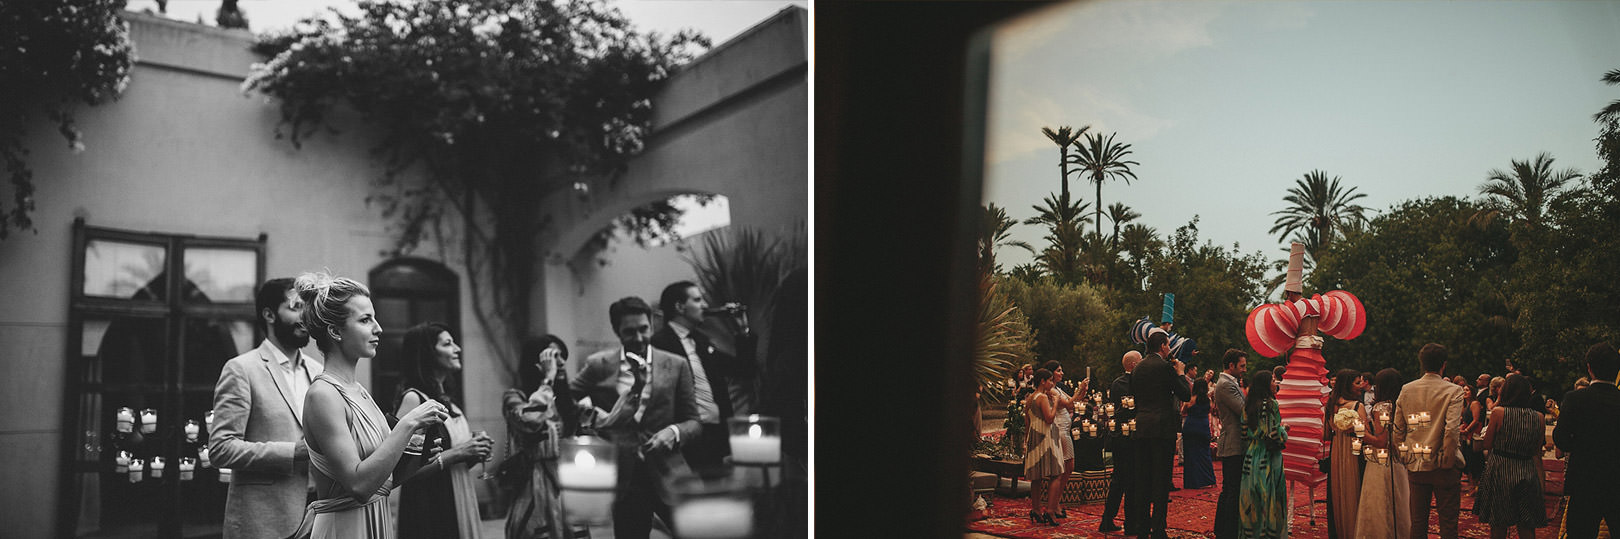 marrakesh show wedding